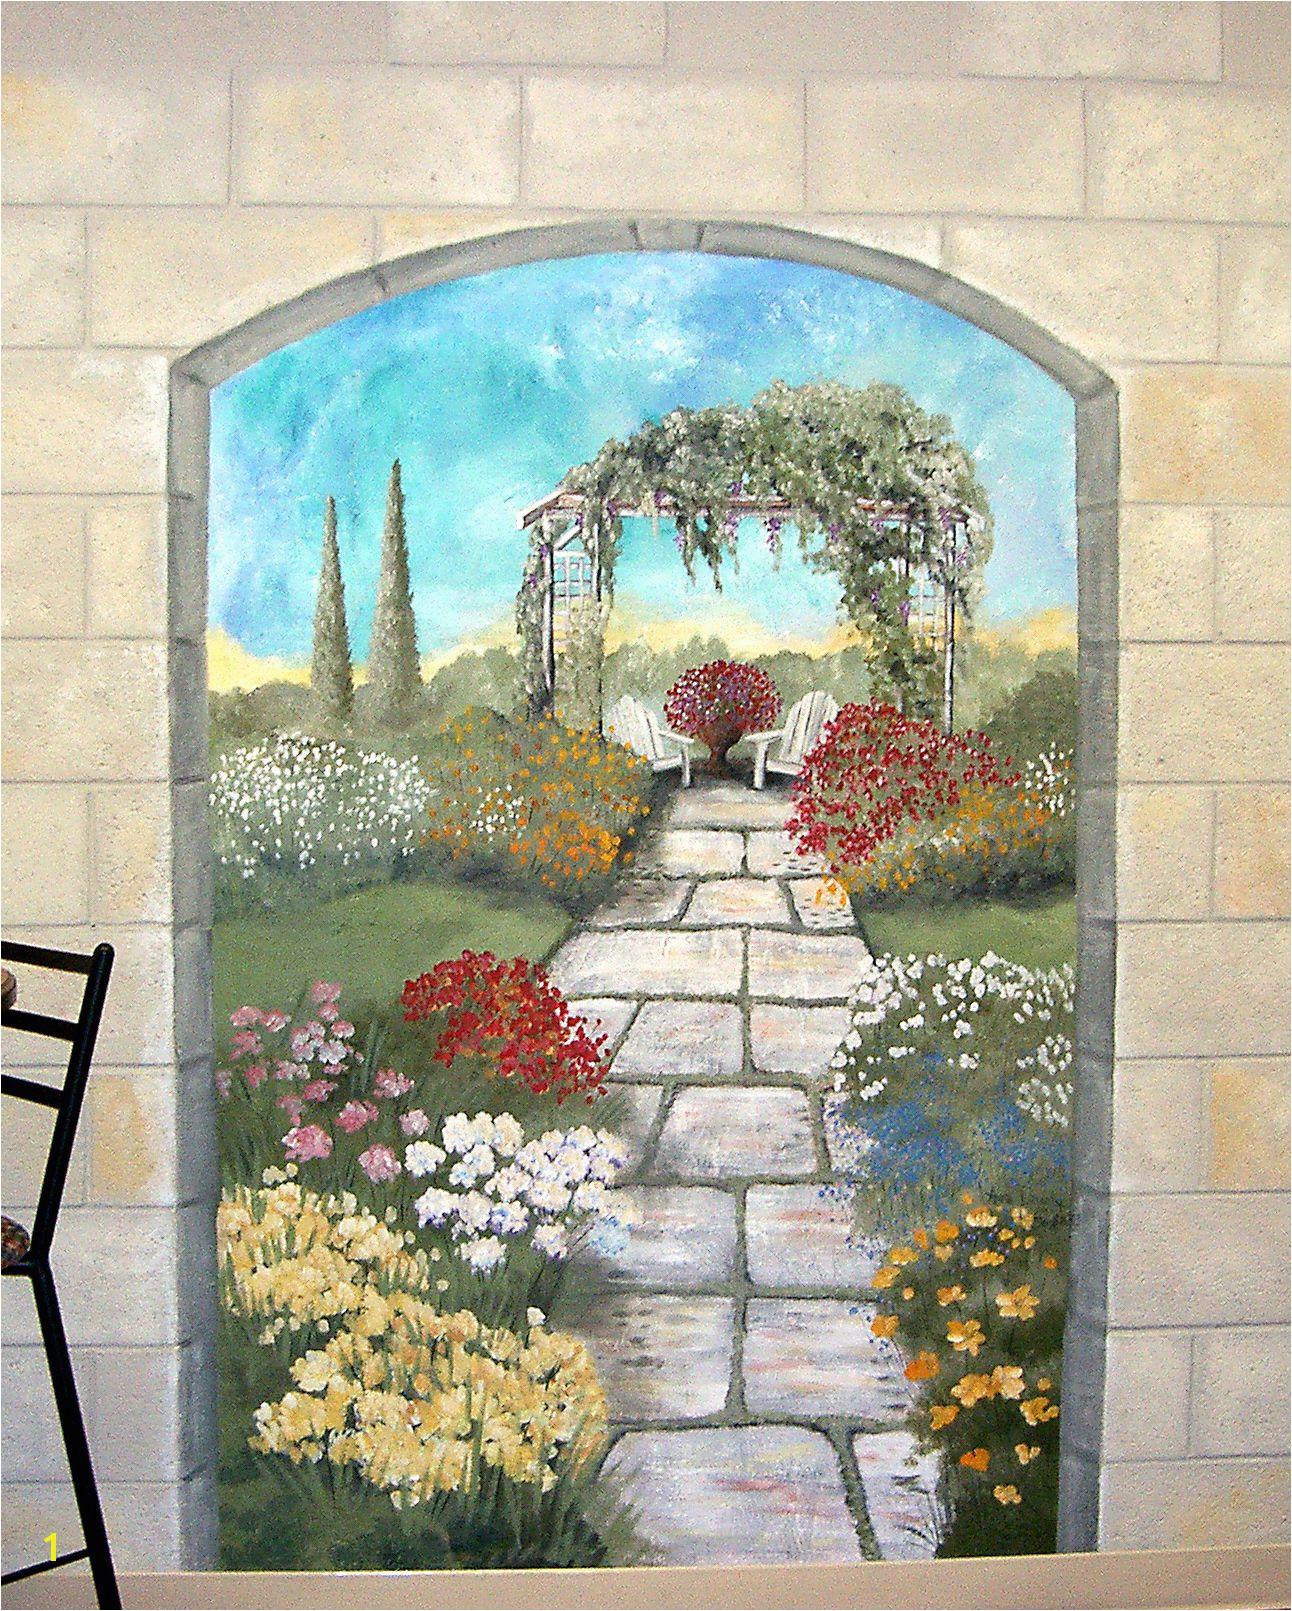 Patio Wall Murals Garden Mural On A Cement Block Wall Colorful Flower Garden Mural